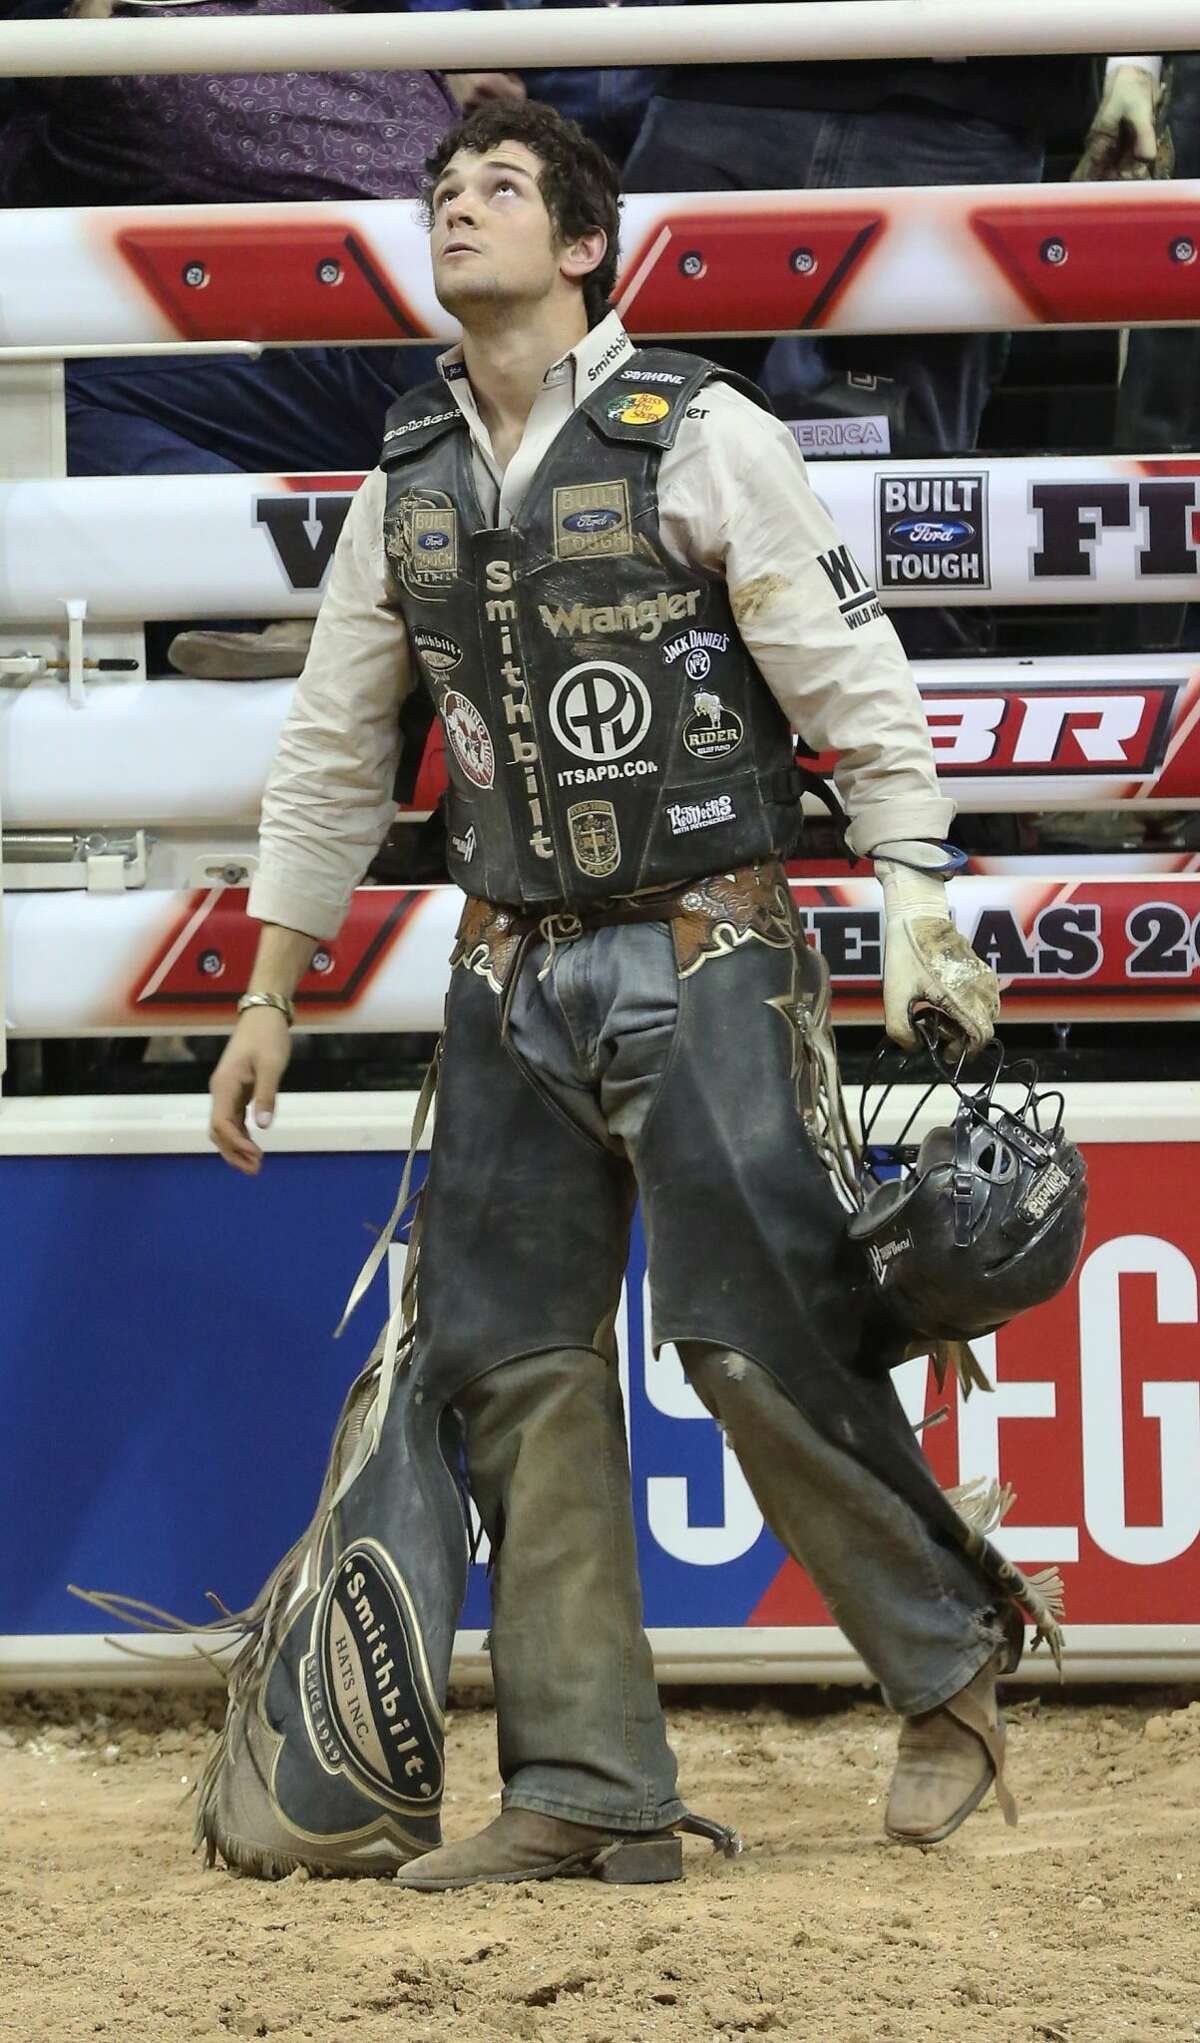 LAS VEGAS, NV - OCTOBER 23: Professional bull rider Ty Pozzobon checks his score at the Professional Bull Riders Built Ford Tough World Finals at the Thomas & Mack Center on October 23, 2013 in Las Vegas, Nevada. (Photo by Gabe Ginsberg/FilmMagic)